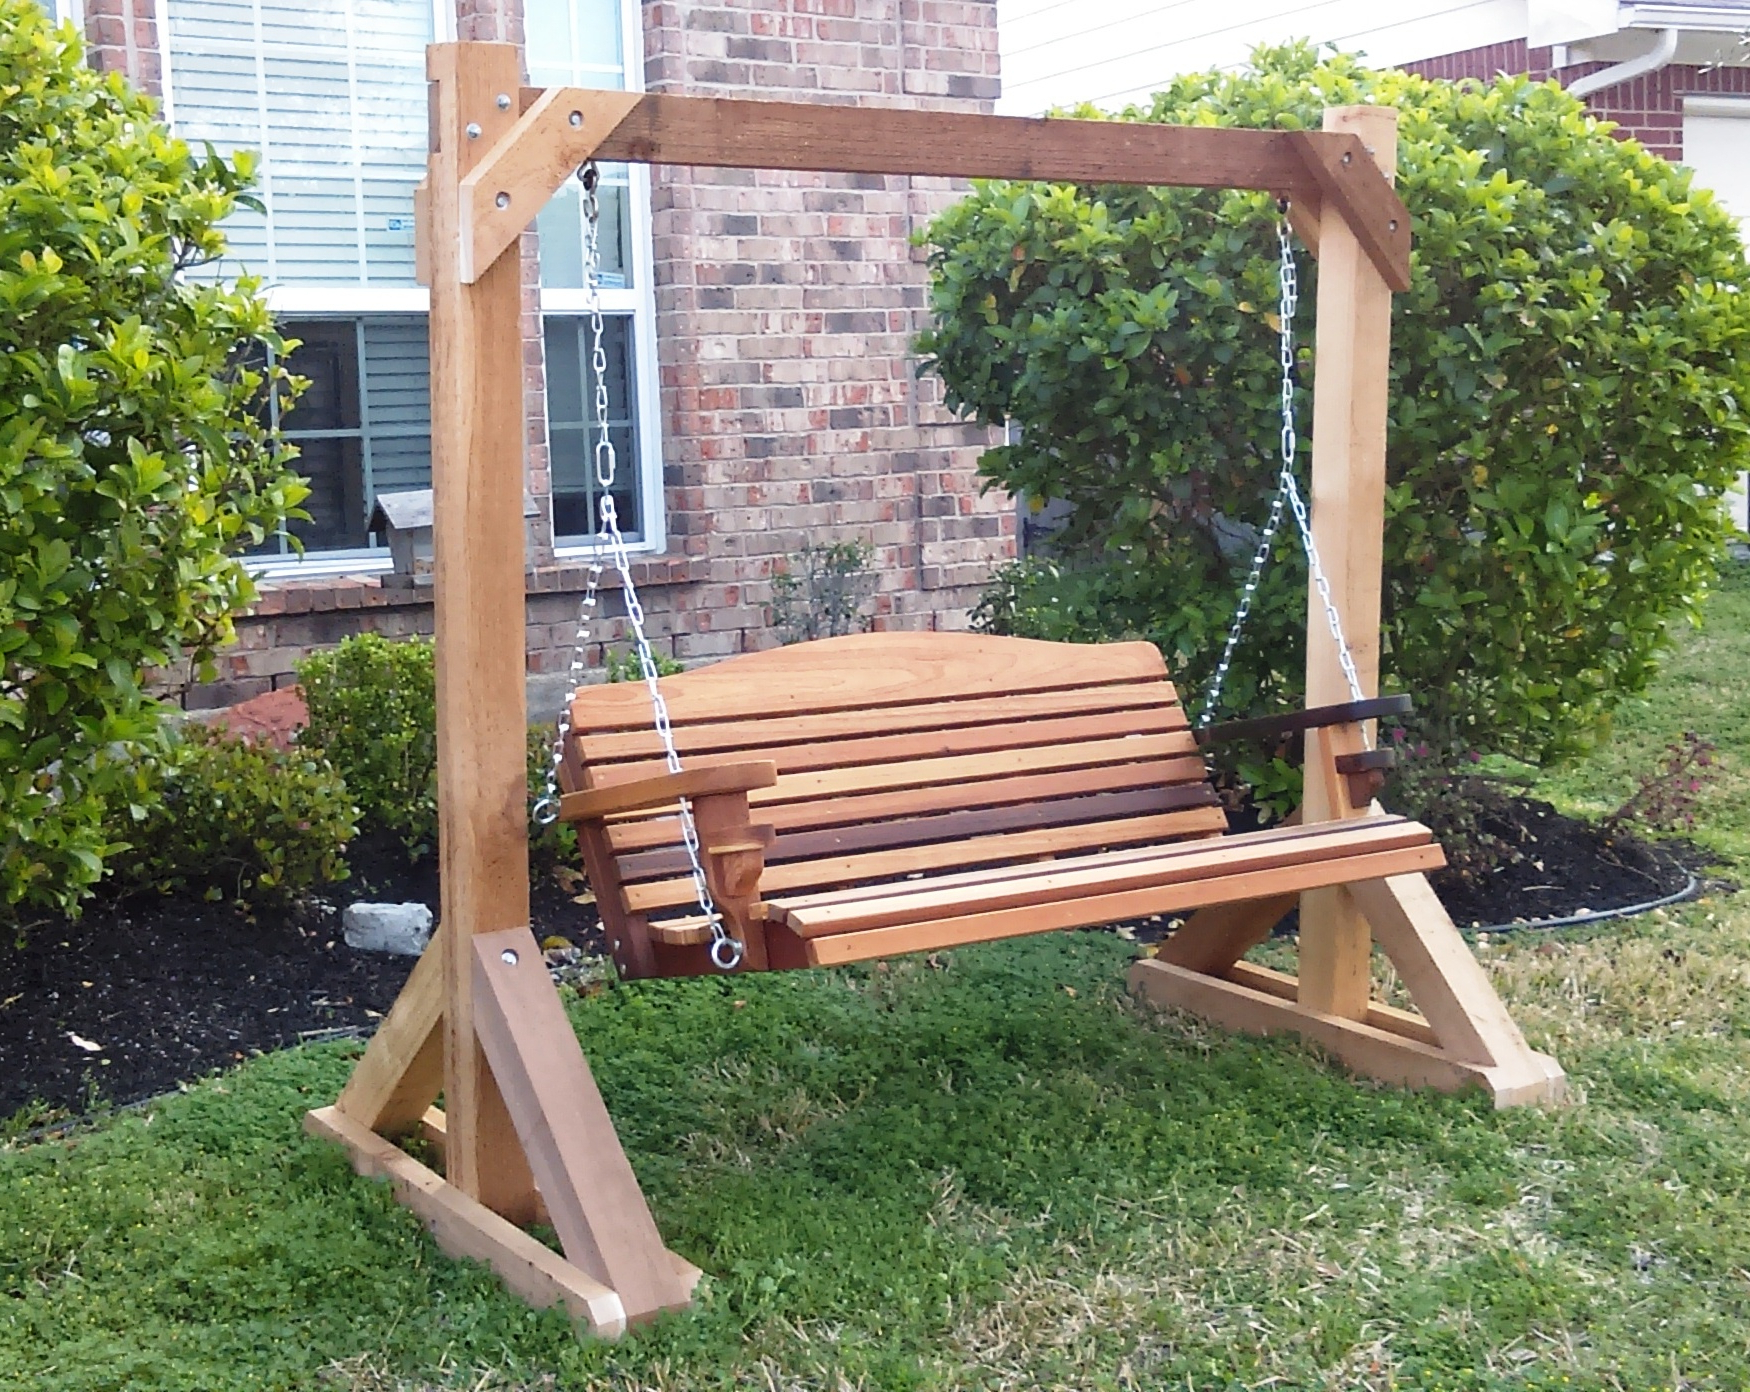 Newest Inspirations: Enjoy Your All Day With Cozy Wooden Porch Within Porch Swings With Stand (Gallery 24 of 25)